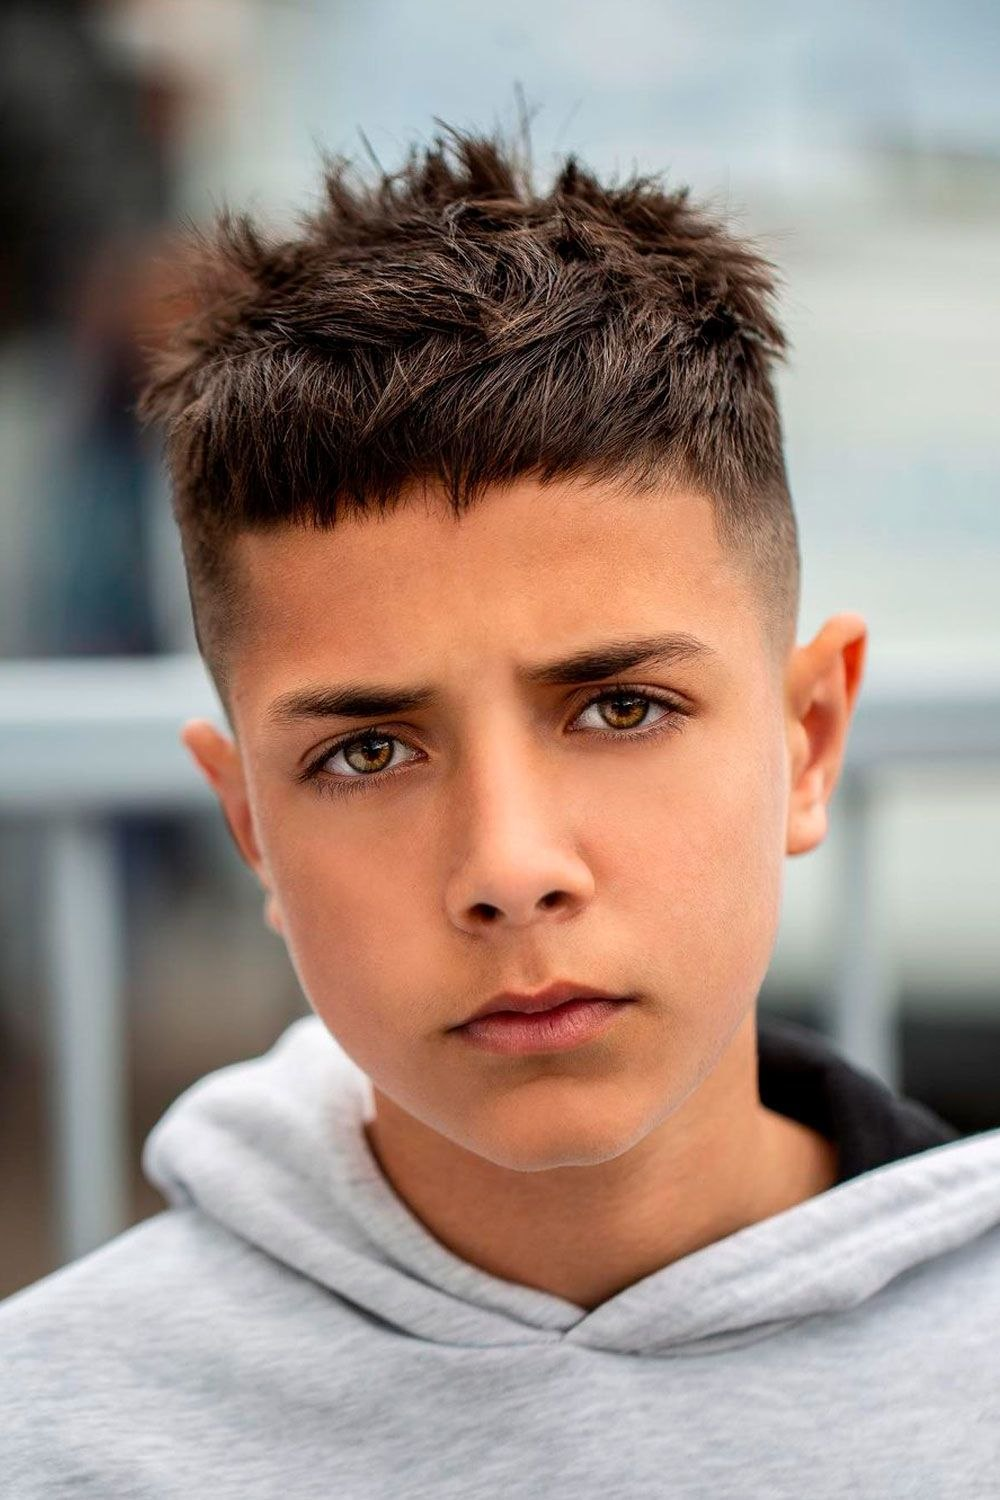 Hairstyles For Short Hair Boys New Top Trendy Boy Haircuts For Stylish Little Guys (2021 Updated) In … Of New Hairstyles for Short Hair Boys